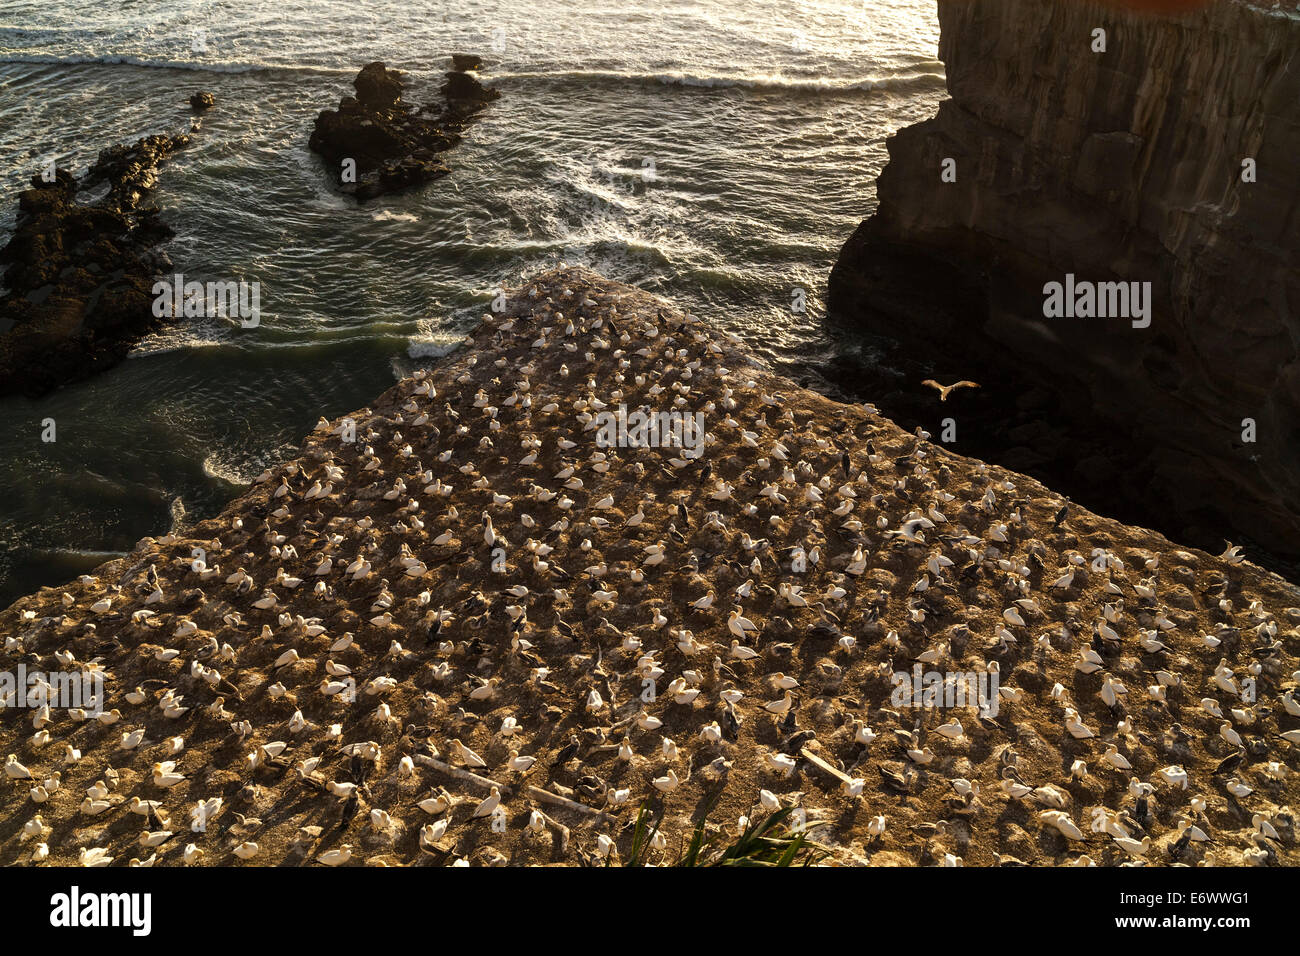 Close-up of gannet colony at Muriwai Beach, west coast near Auckland, North Island, New Zealand - Stock Image